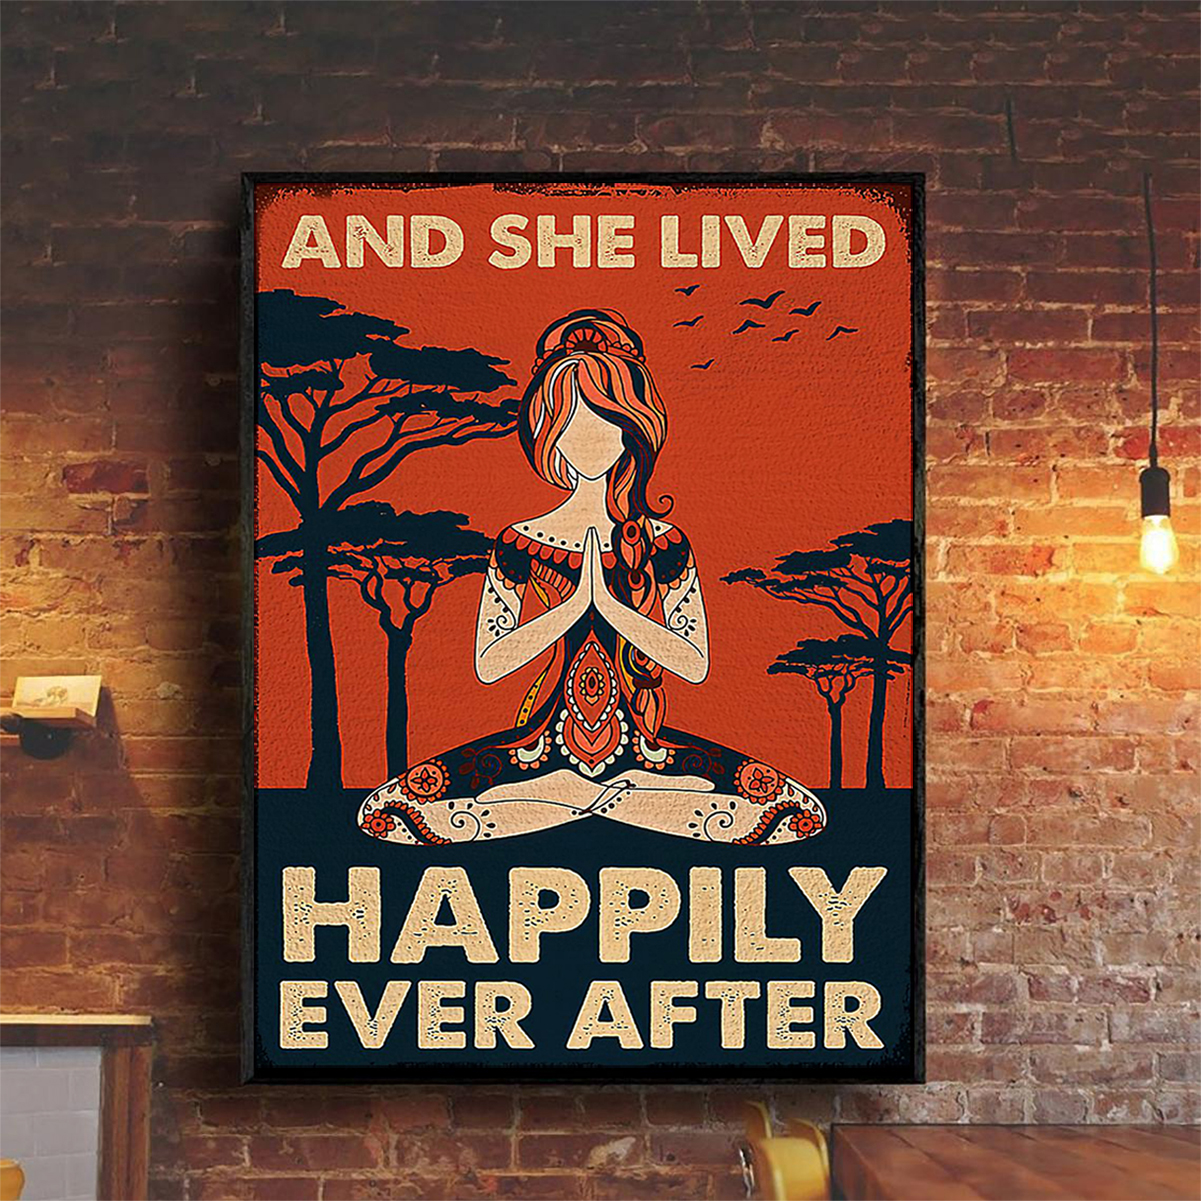 Yoga girl and she lived happily ever after poster A2